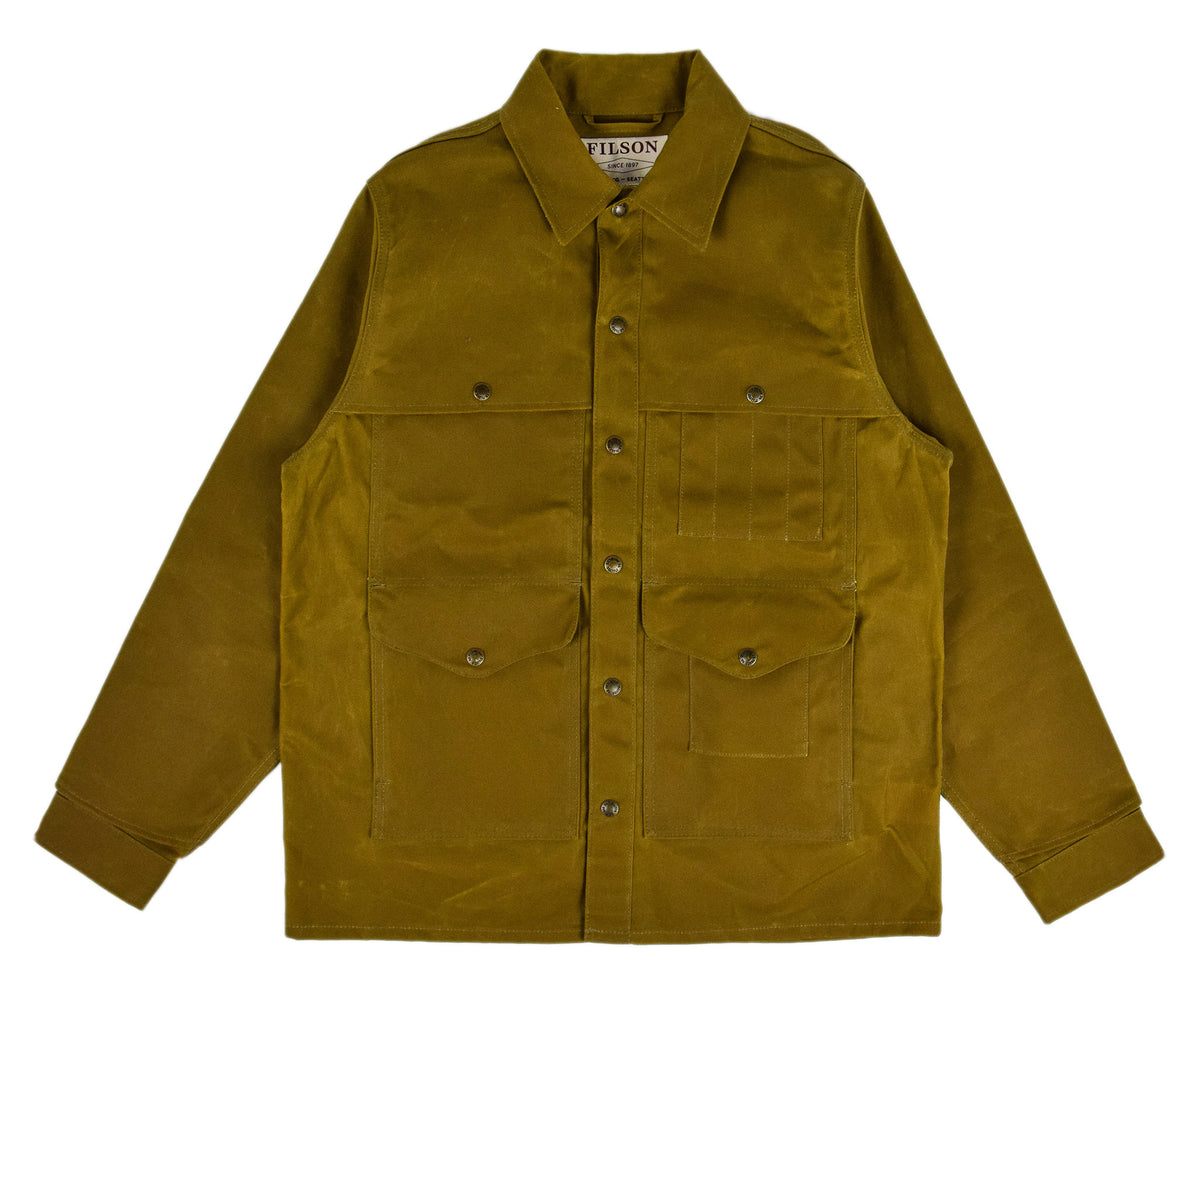 Filson Tin Cloth Cruiser Dark Tan front